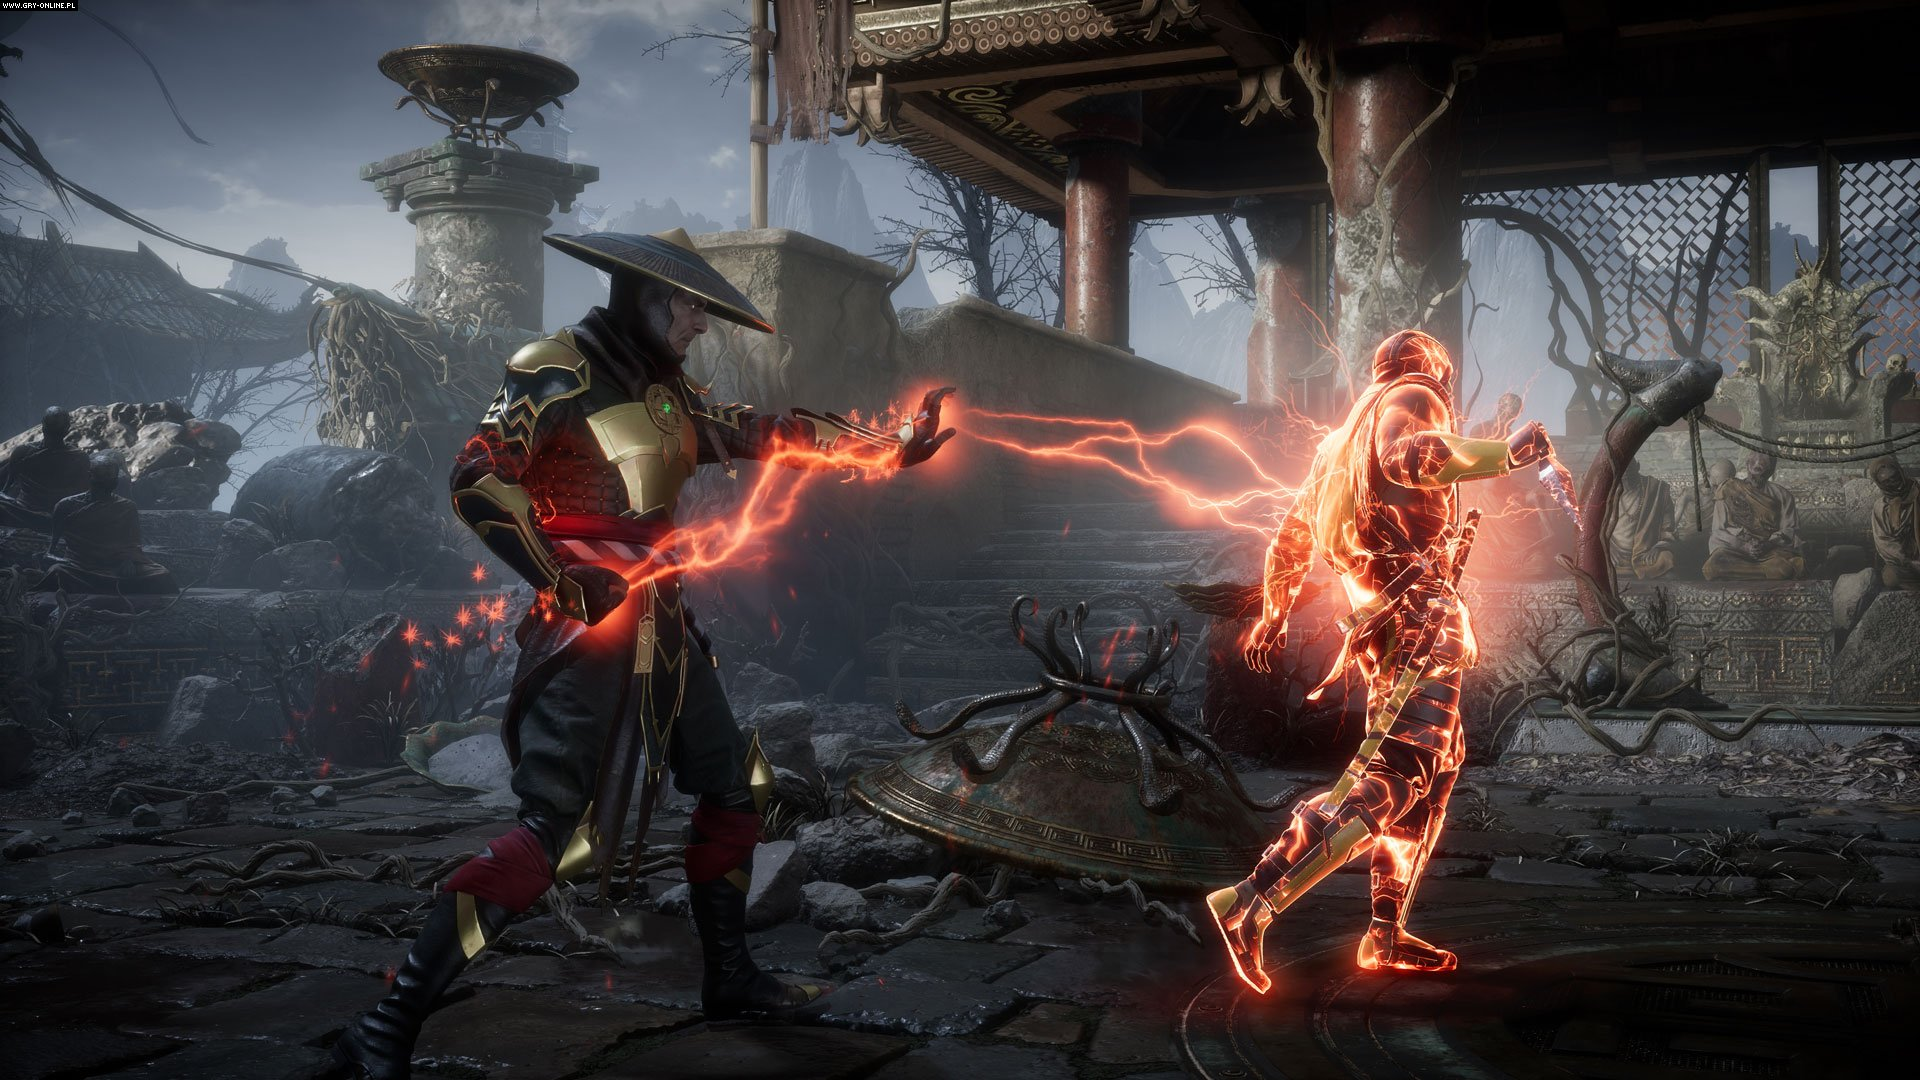 Mortal Kombat 11 PC, PS4, XONE, Switch Games Image 15/17, NetherRealm Studios , Warner Bros. Interactive Entertainment